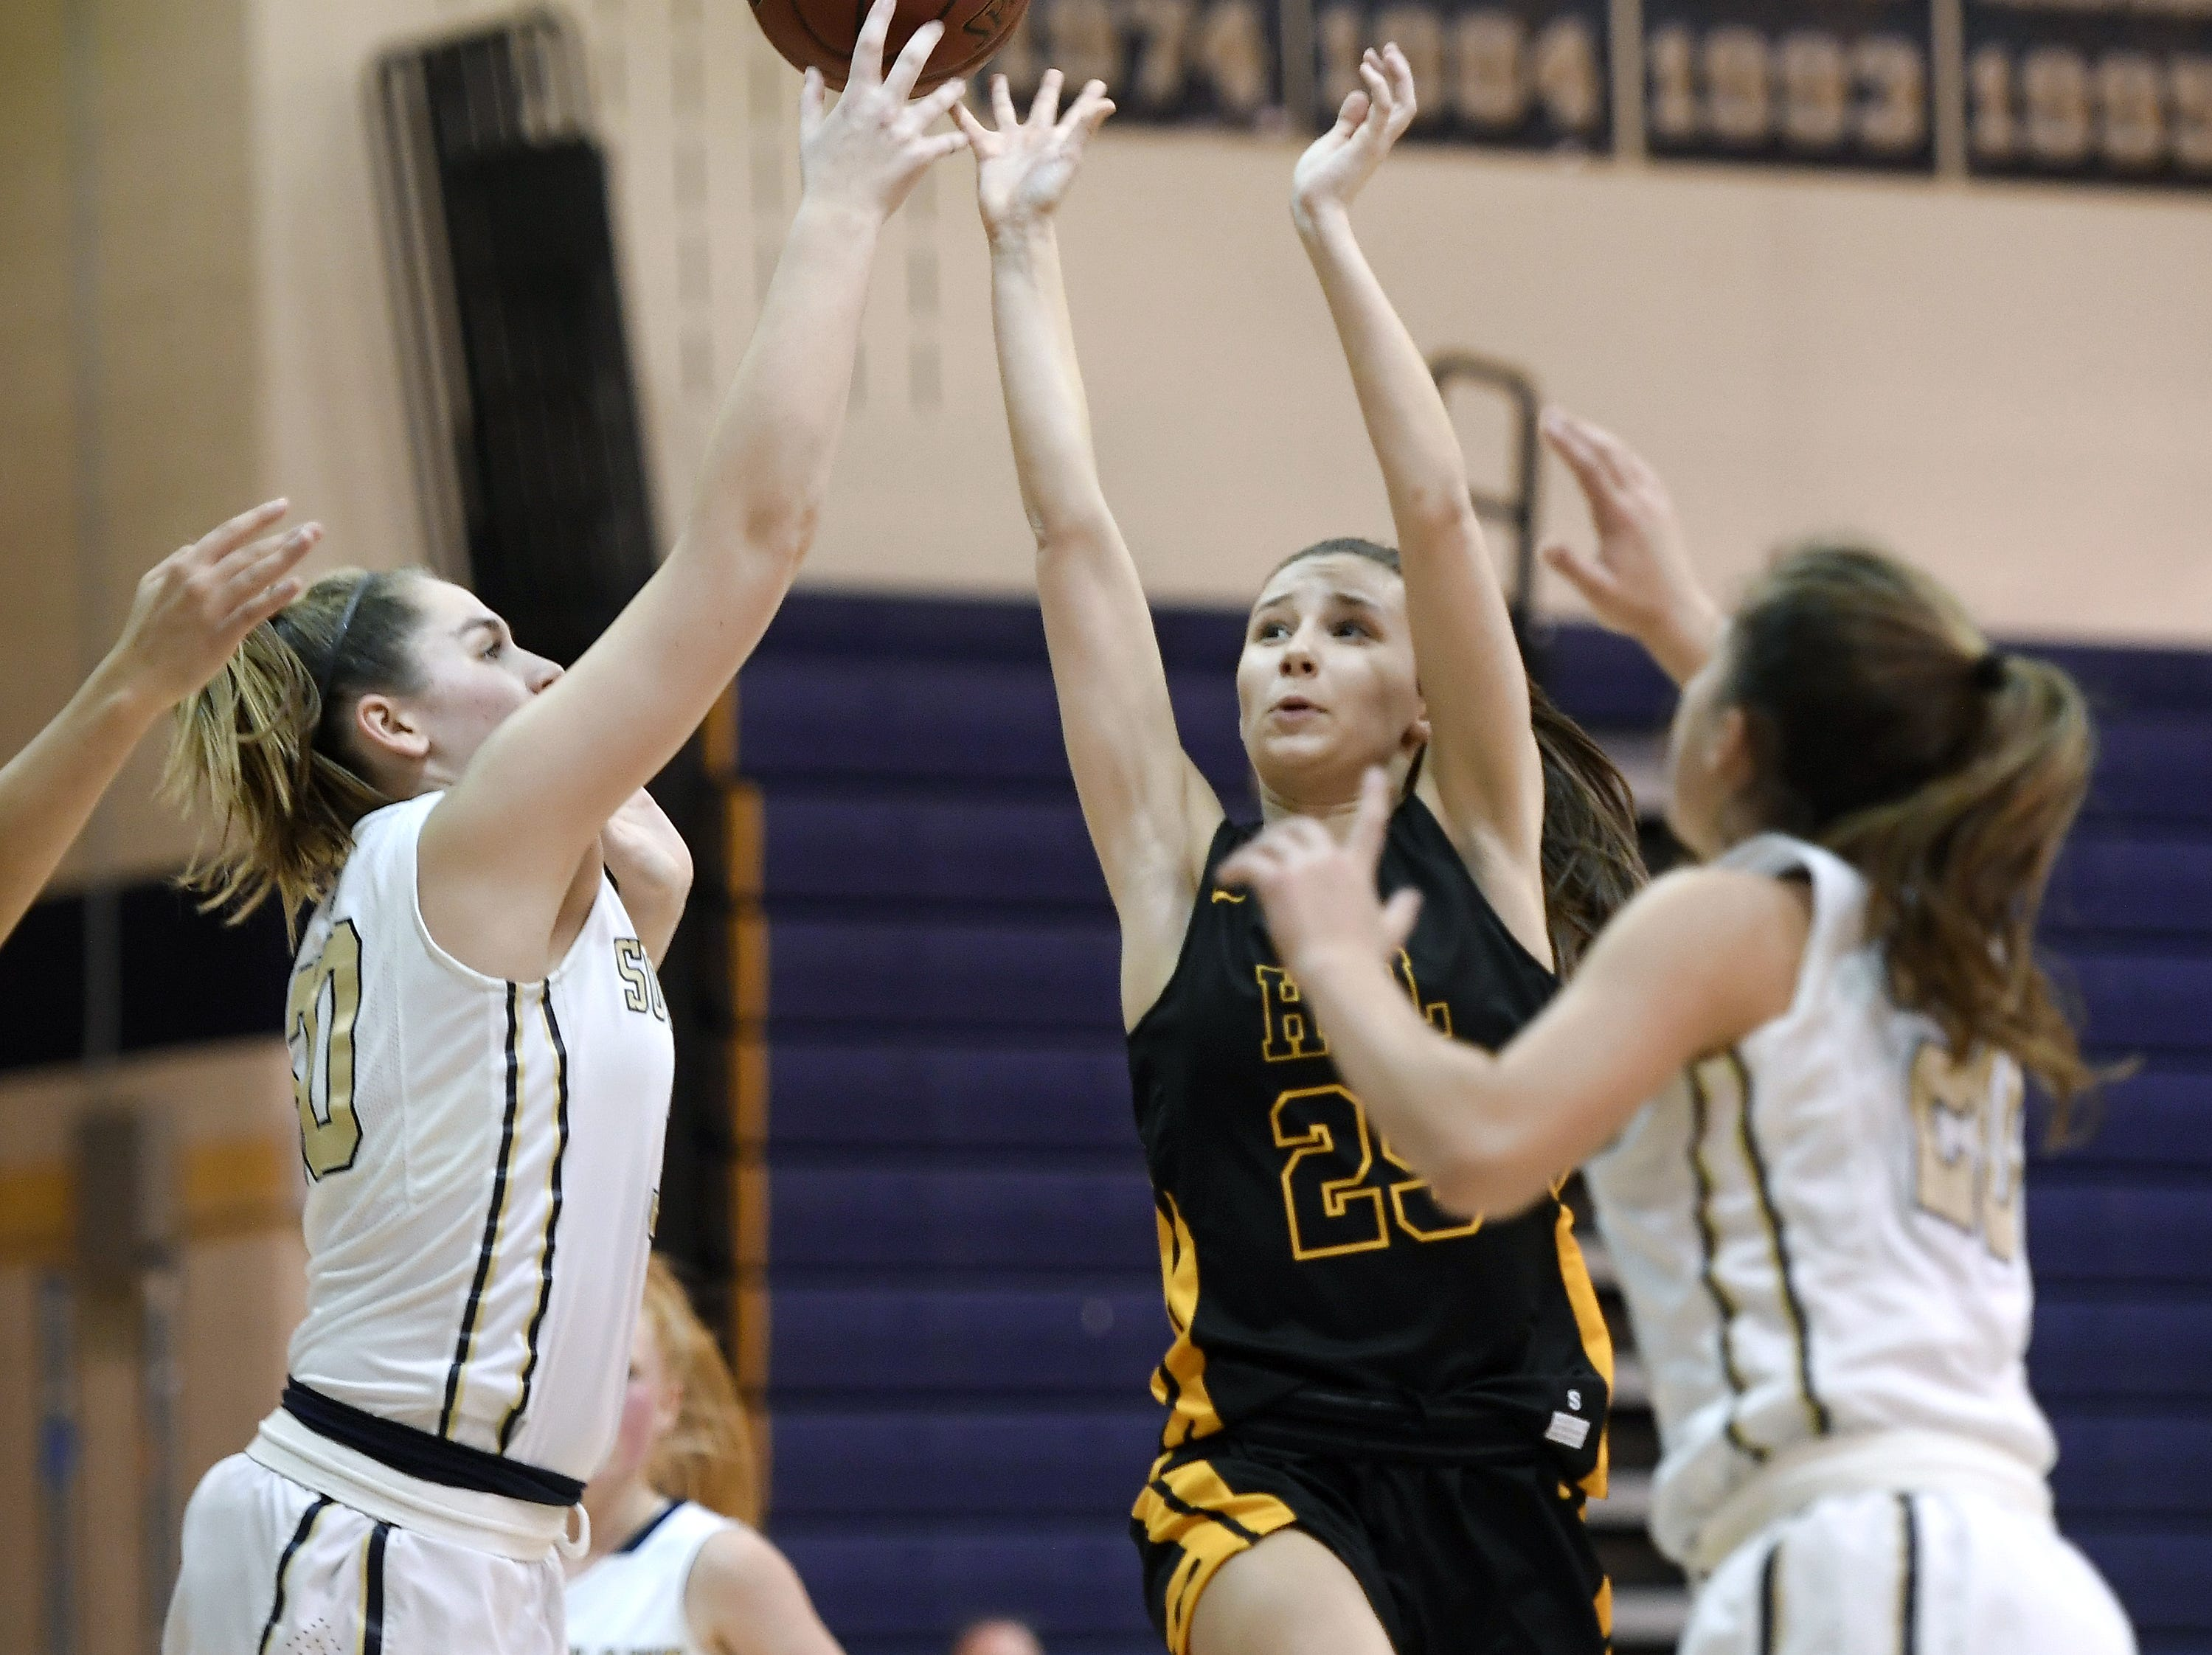 HF-L's Katie Brown, right, takes a shot while defended by Pittsford Sutherland's Aneliese Brandt during a regular season game played at Pittsford Sutherland High School on  Thursday, Nov. 29, 2018. Pittsford Sutherland beat Honeoye Falls-Lima in overtime 53-47.